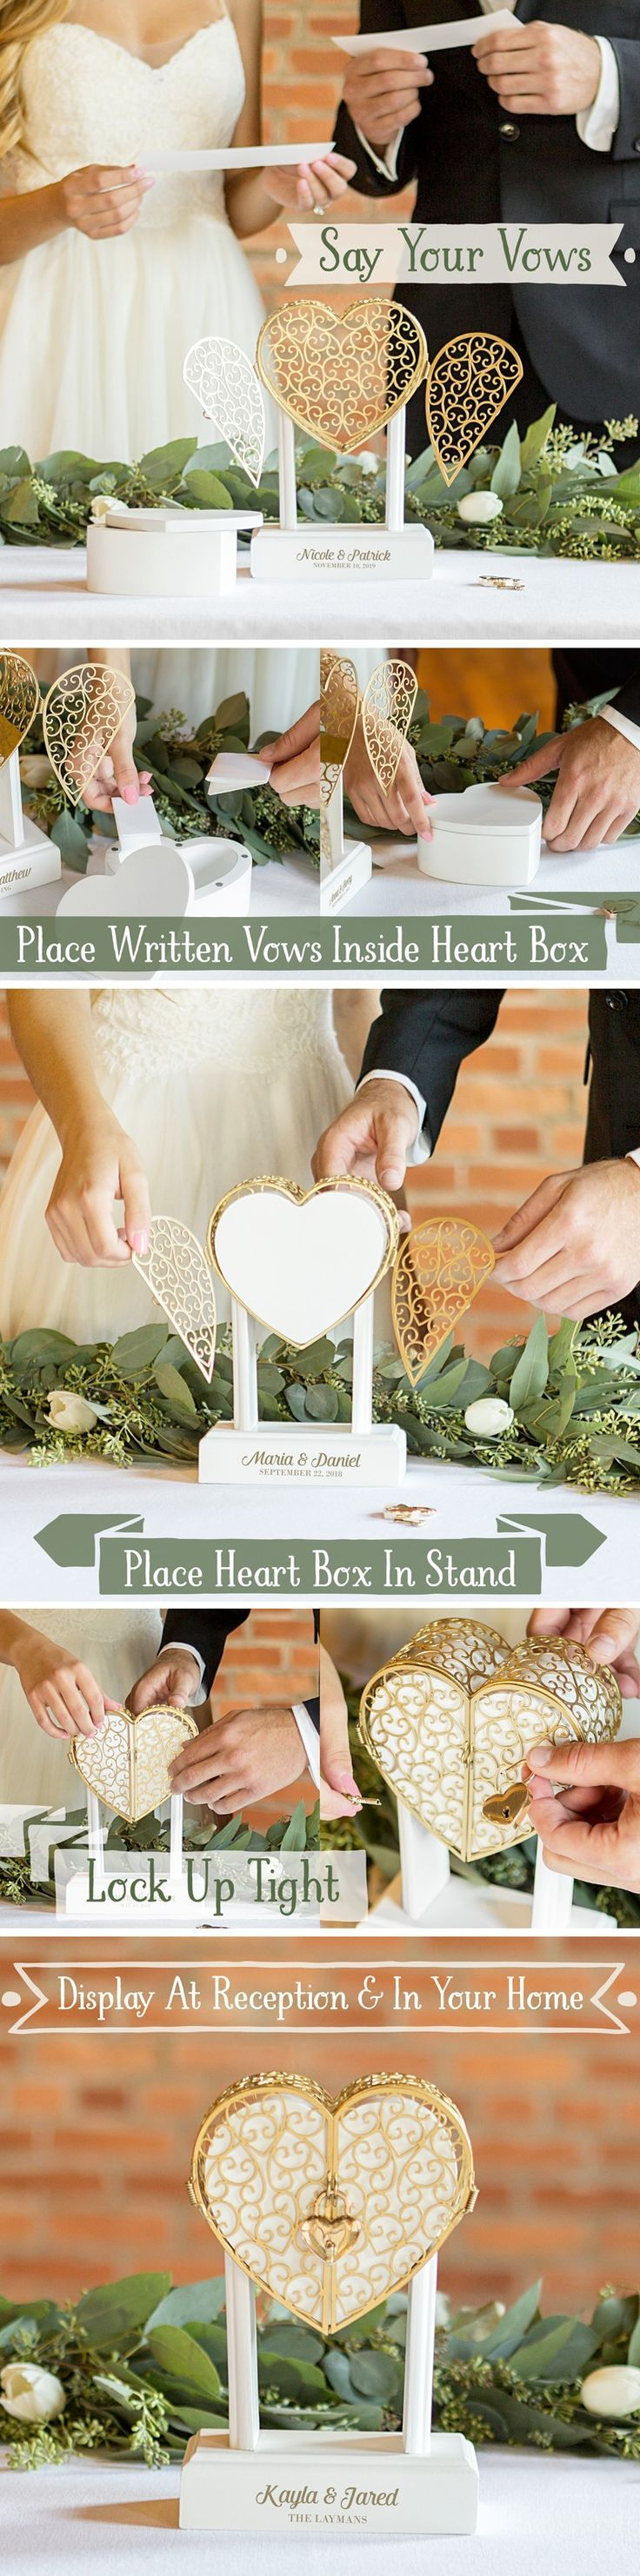 Wedding Keepsake Idea - Use a lockbox to keep your wedding vows safe and secure. Use the lockbox as a decorative display during your wedding ceremony. The bride and groom can place their vows in the lockbox during the ceremony and will have an everlasting